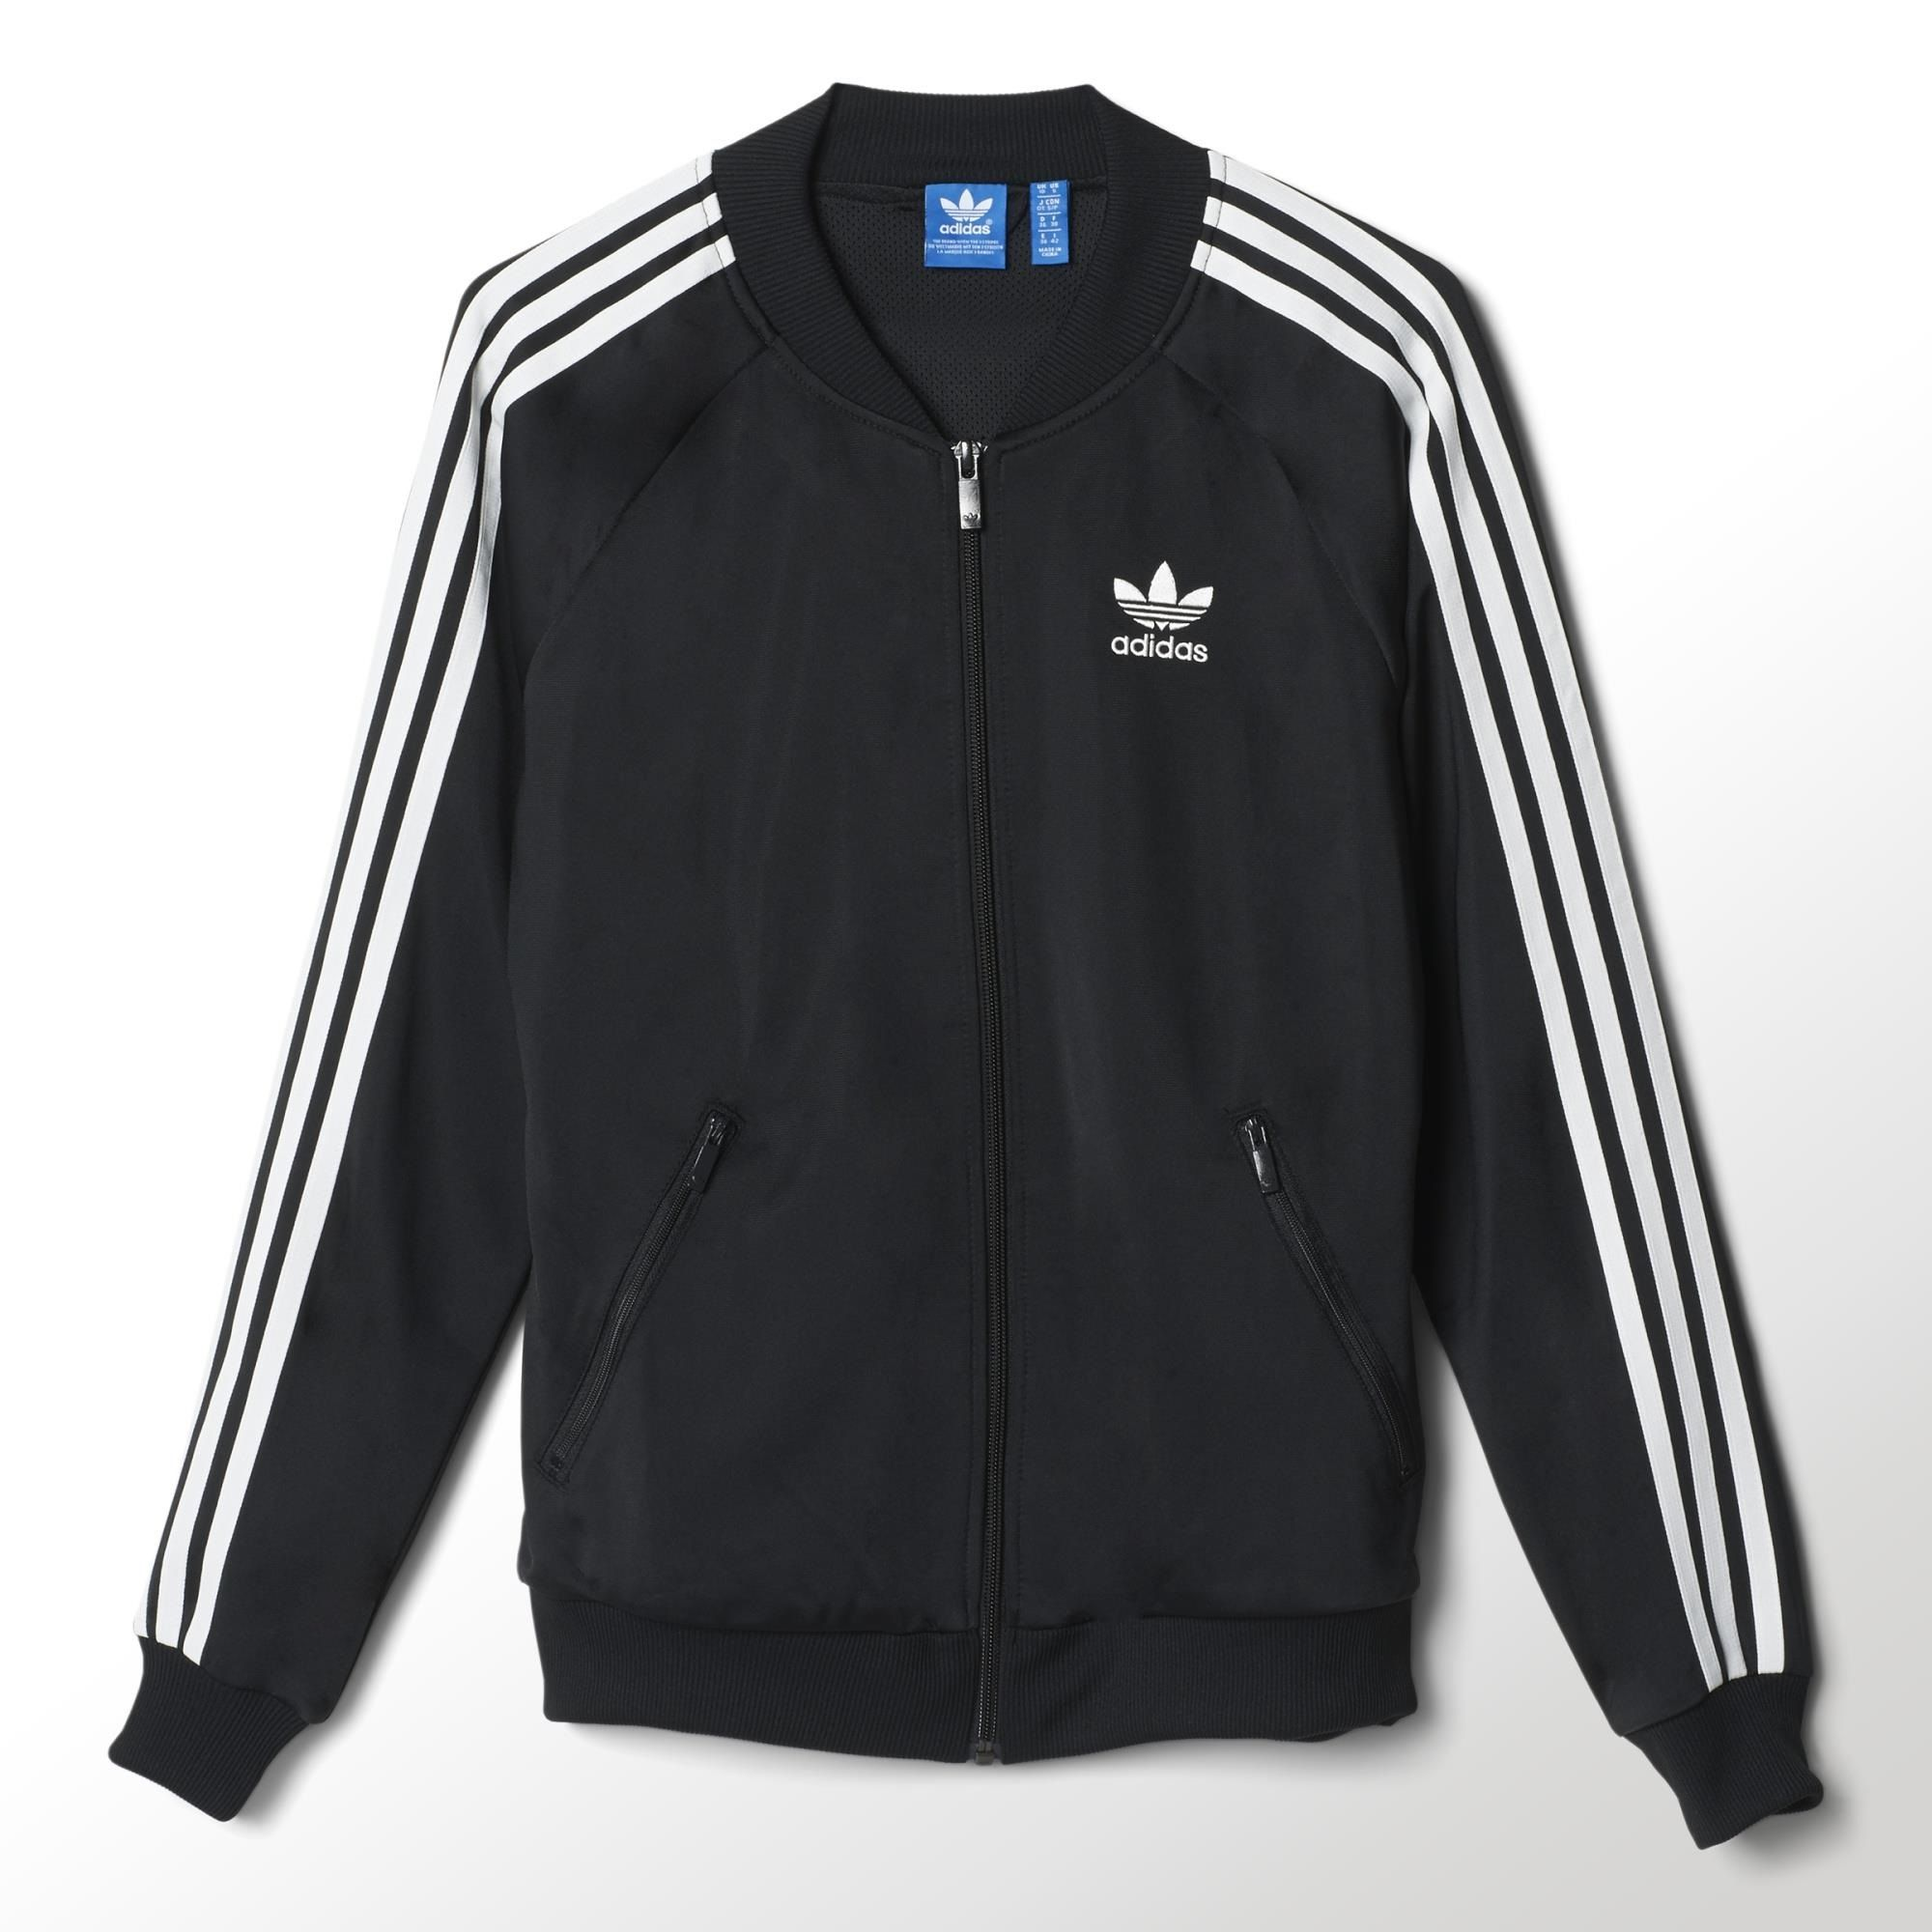 781520a265d This women's Superstar Track Top is a one-to-one reissue of one of adidas'  most iconic styles. The track jacket comes in shiny tricot with all the  authentic ...